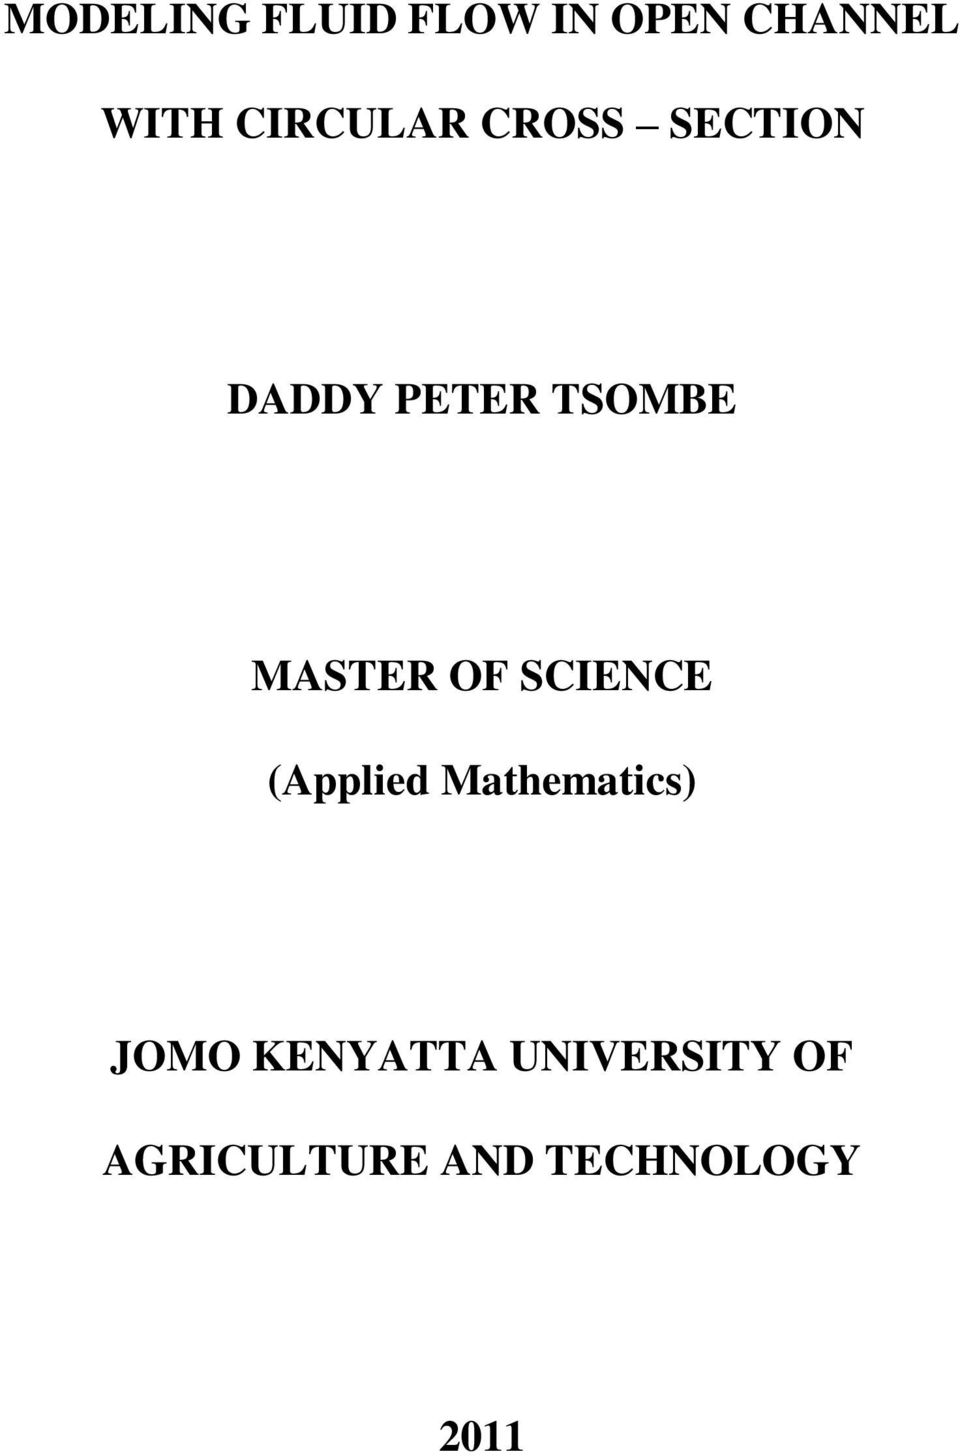 MASTER OF SCIENCE (Applied Mathematics) JOMO